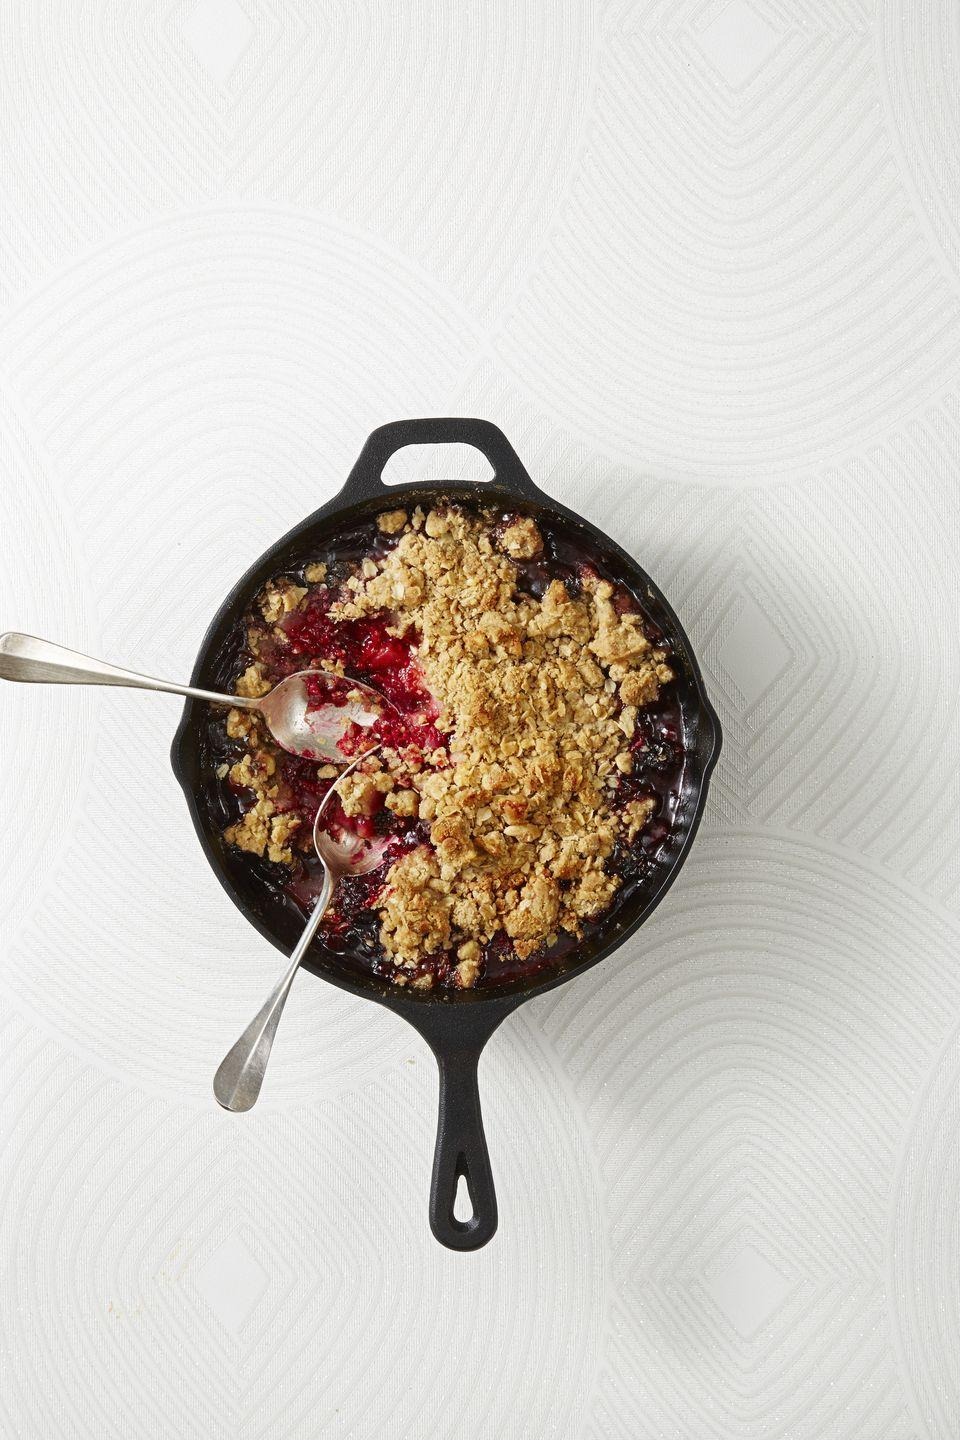 "<p>Here's an excuse to break out your cast iron skillet! We spiced up berries and fresh fall pears, then spiked the filling with amaretto and topped the whole thing with a buttery, crunchy crumble.</p><p><em><a href=""https://www.goodhousekeeping.com/food-recipes/dessert/a42825/spiced-pear-berry-crumble-recipe/"" rel=""nofollow noopener"" target=""_blank"" data-ylk=""slk:Get the recipe for Spiced Pear and Berry Crumble »"" class=""link rapid-noclick-resp"">Get the recipe for Spiced Pear and Berry Crumble »</a></em> </p>"